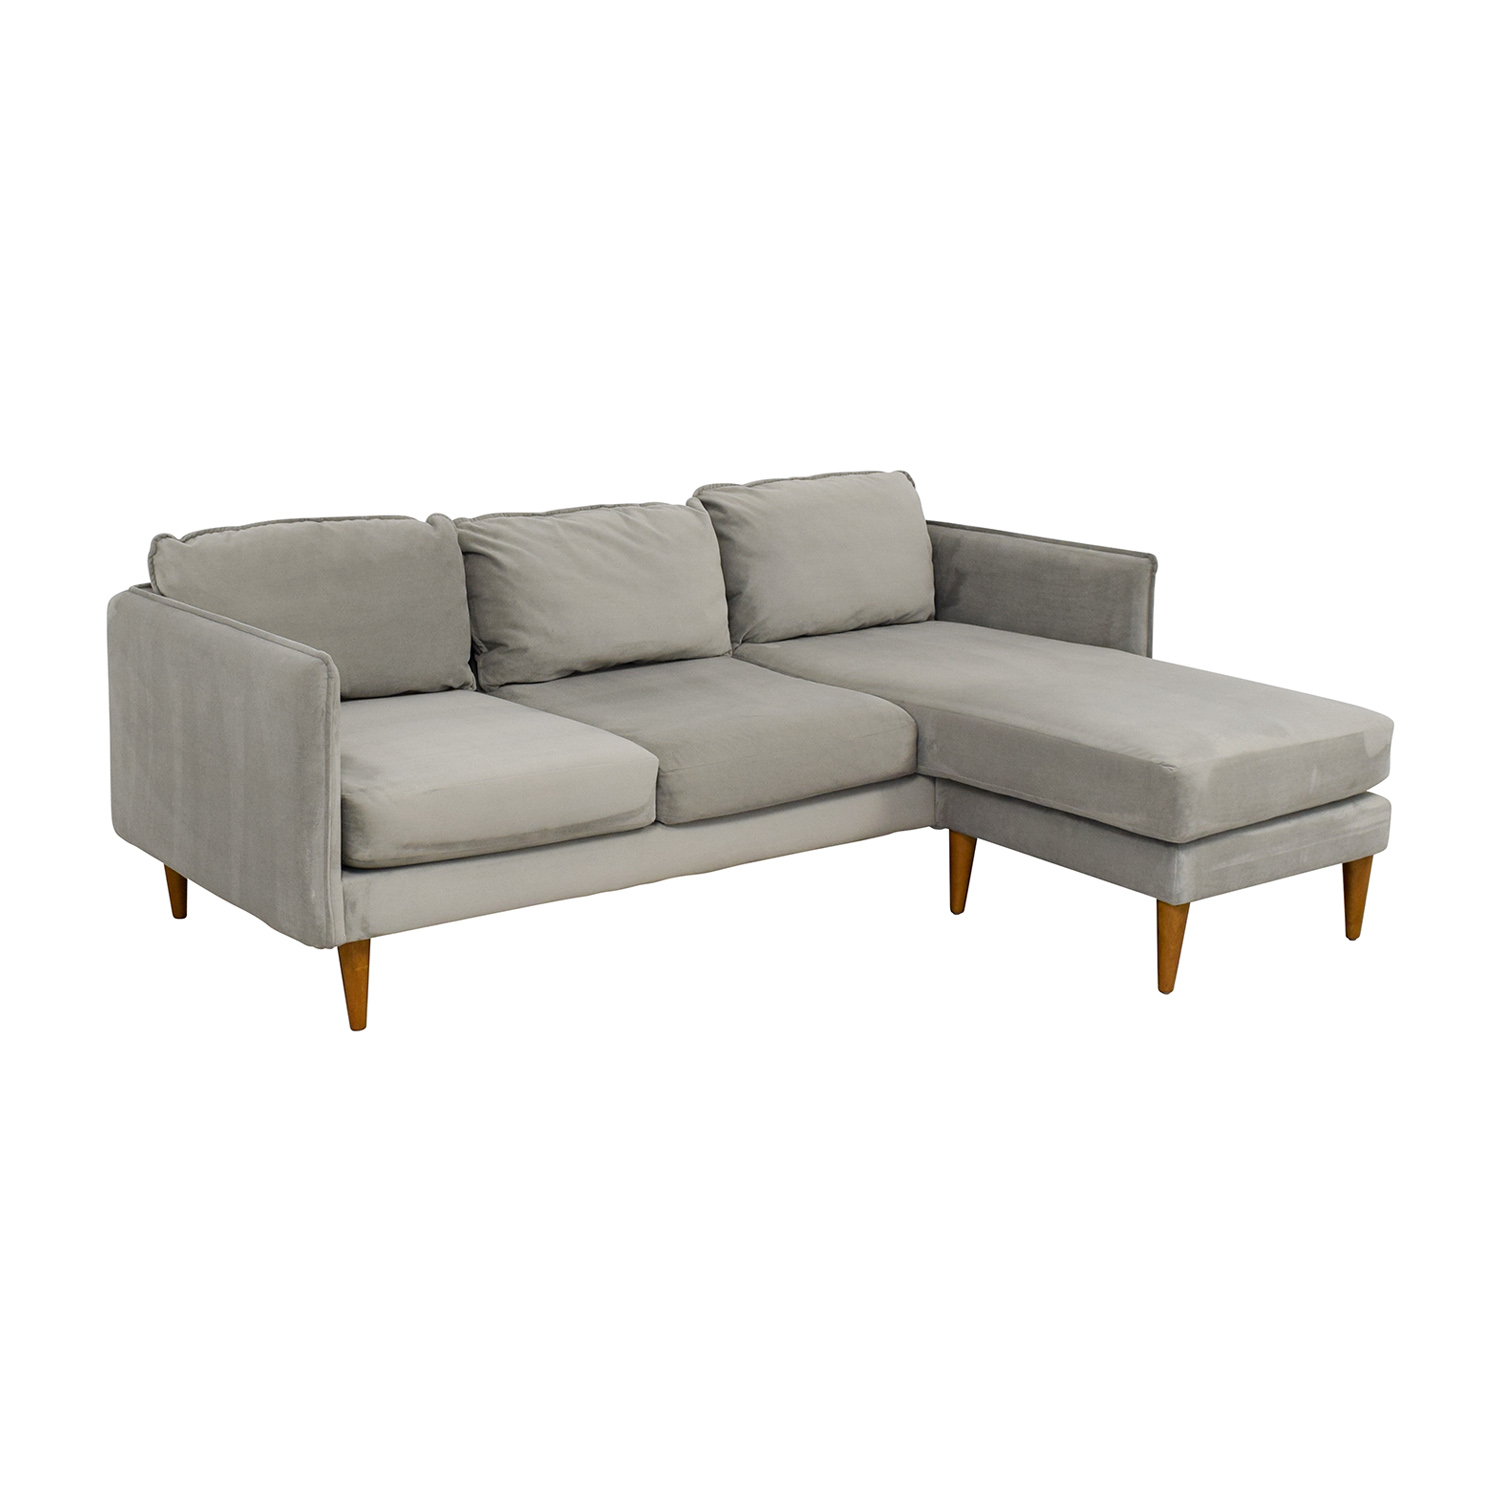 West Elm West Elm Mid Century Chaise Sectional Sofa grey